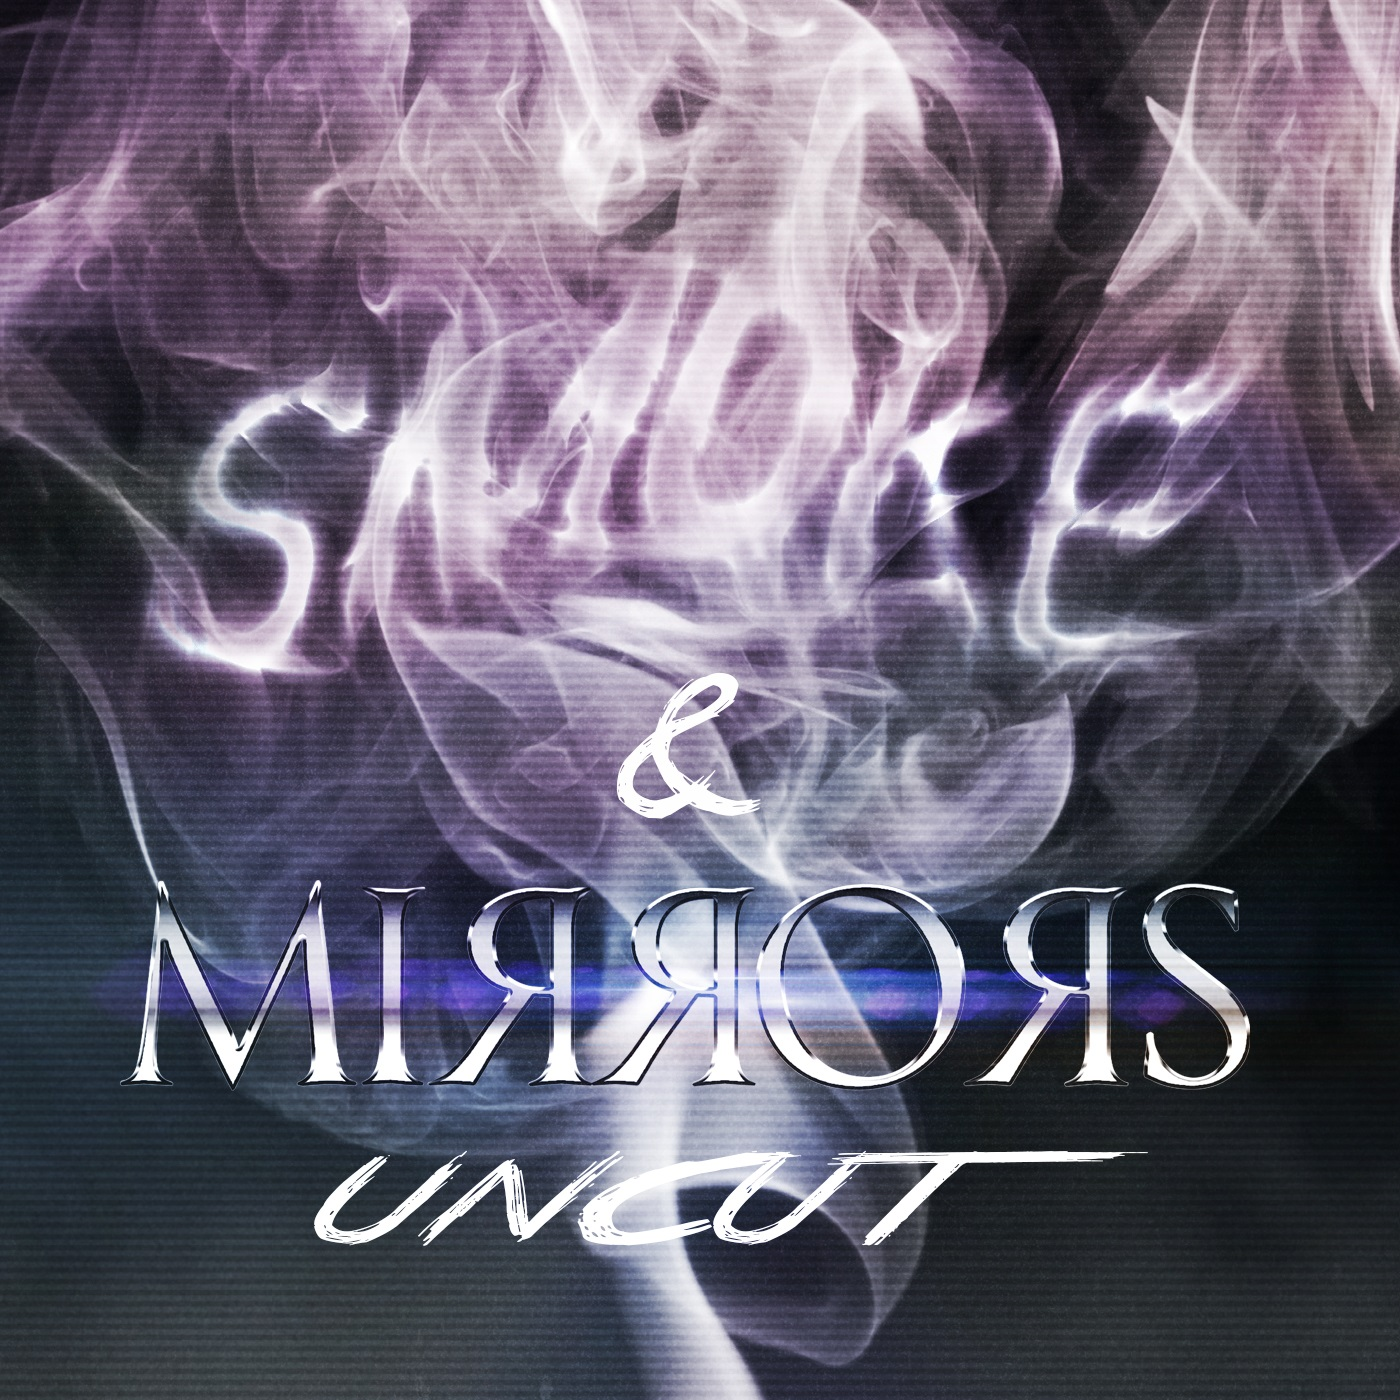 Smoke and Mirrors Uncut